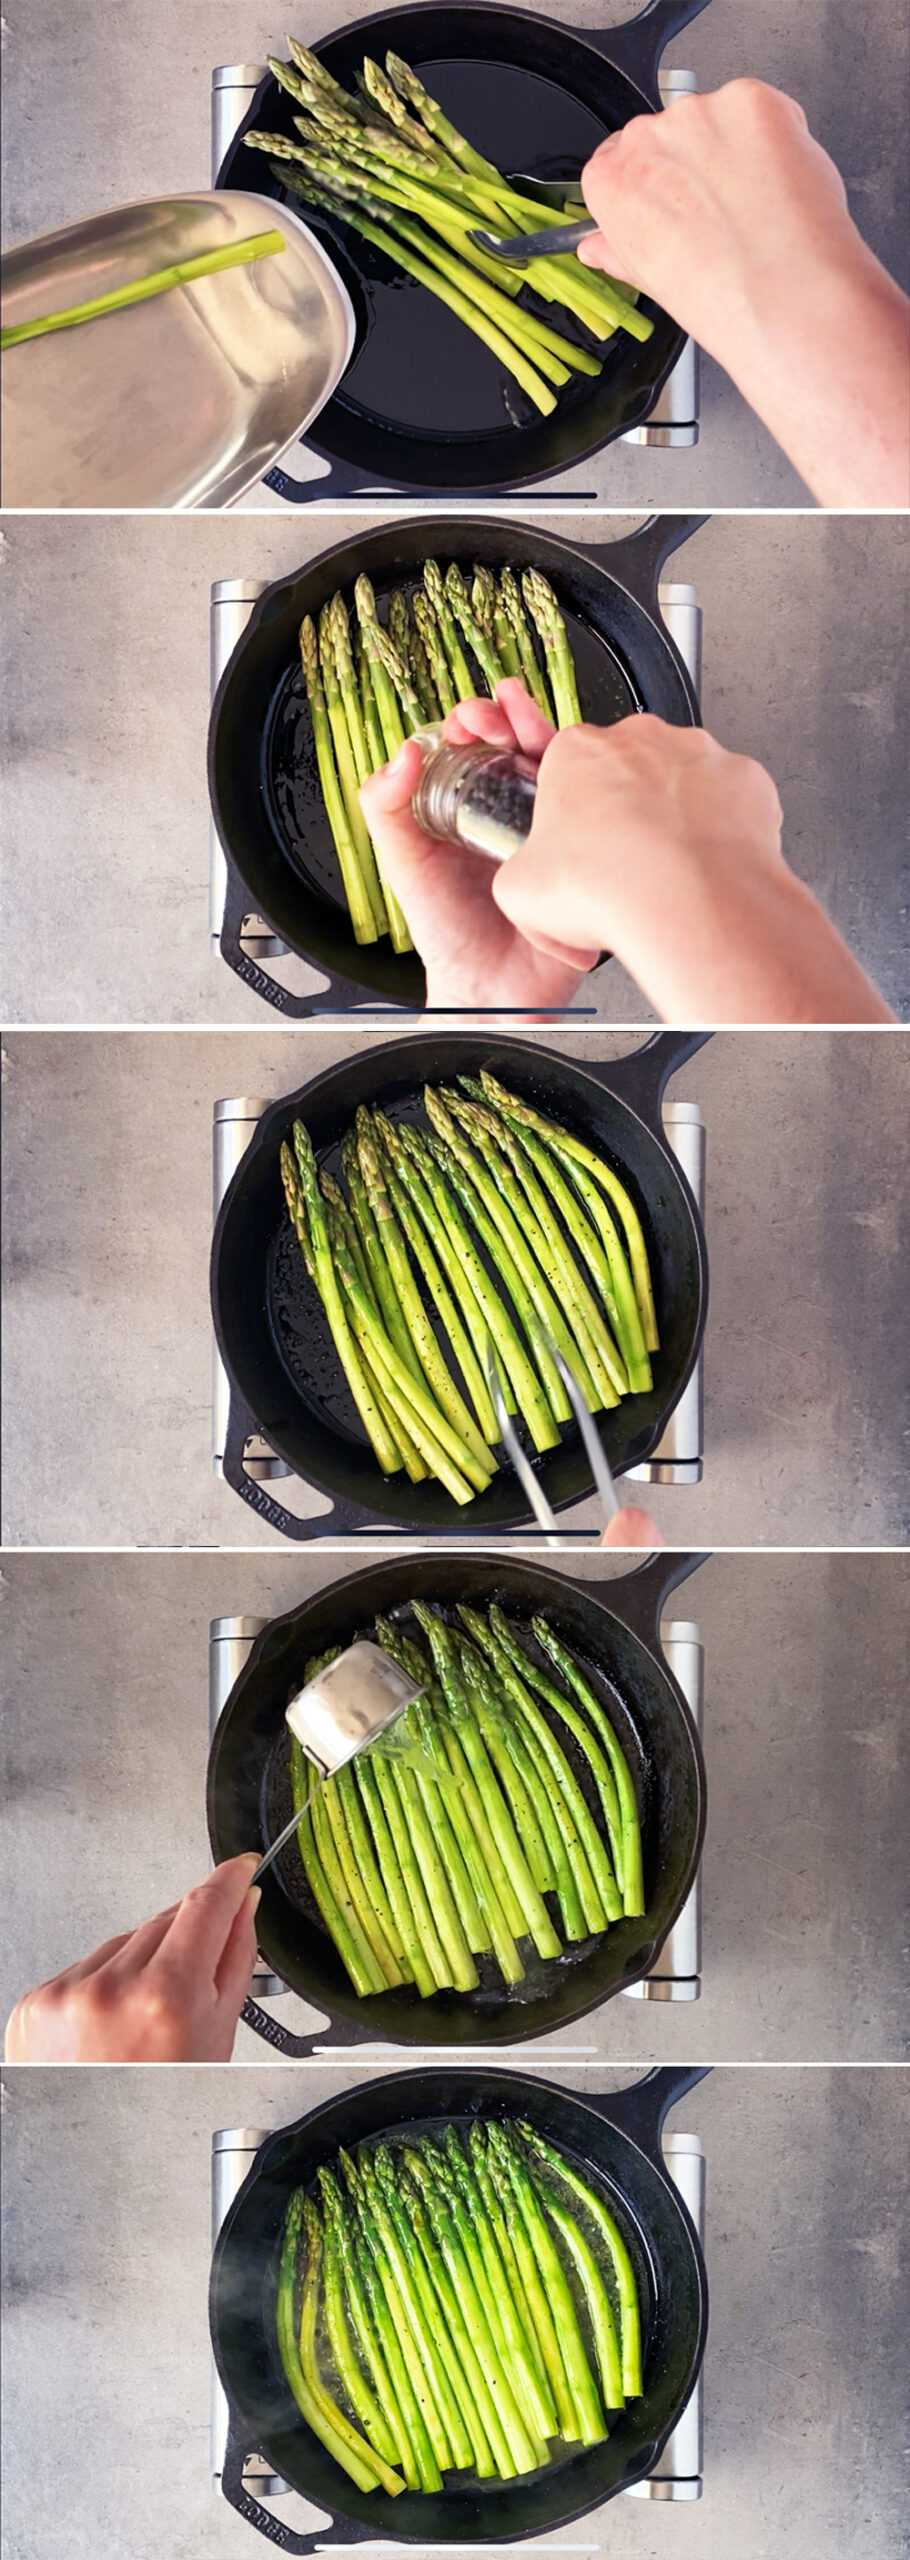 How to cook skillet asparagus, step by step.